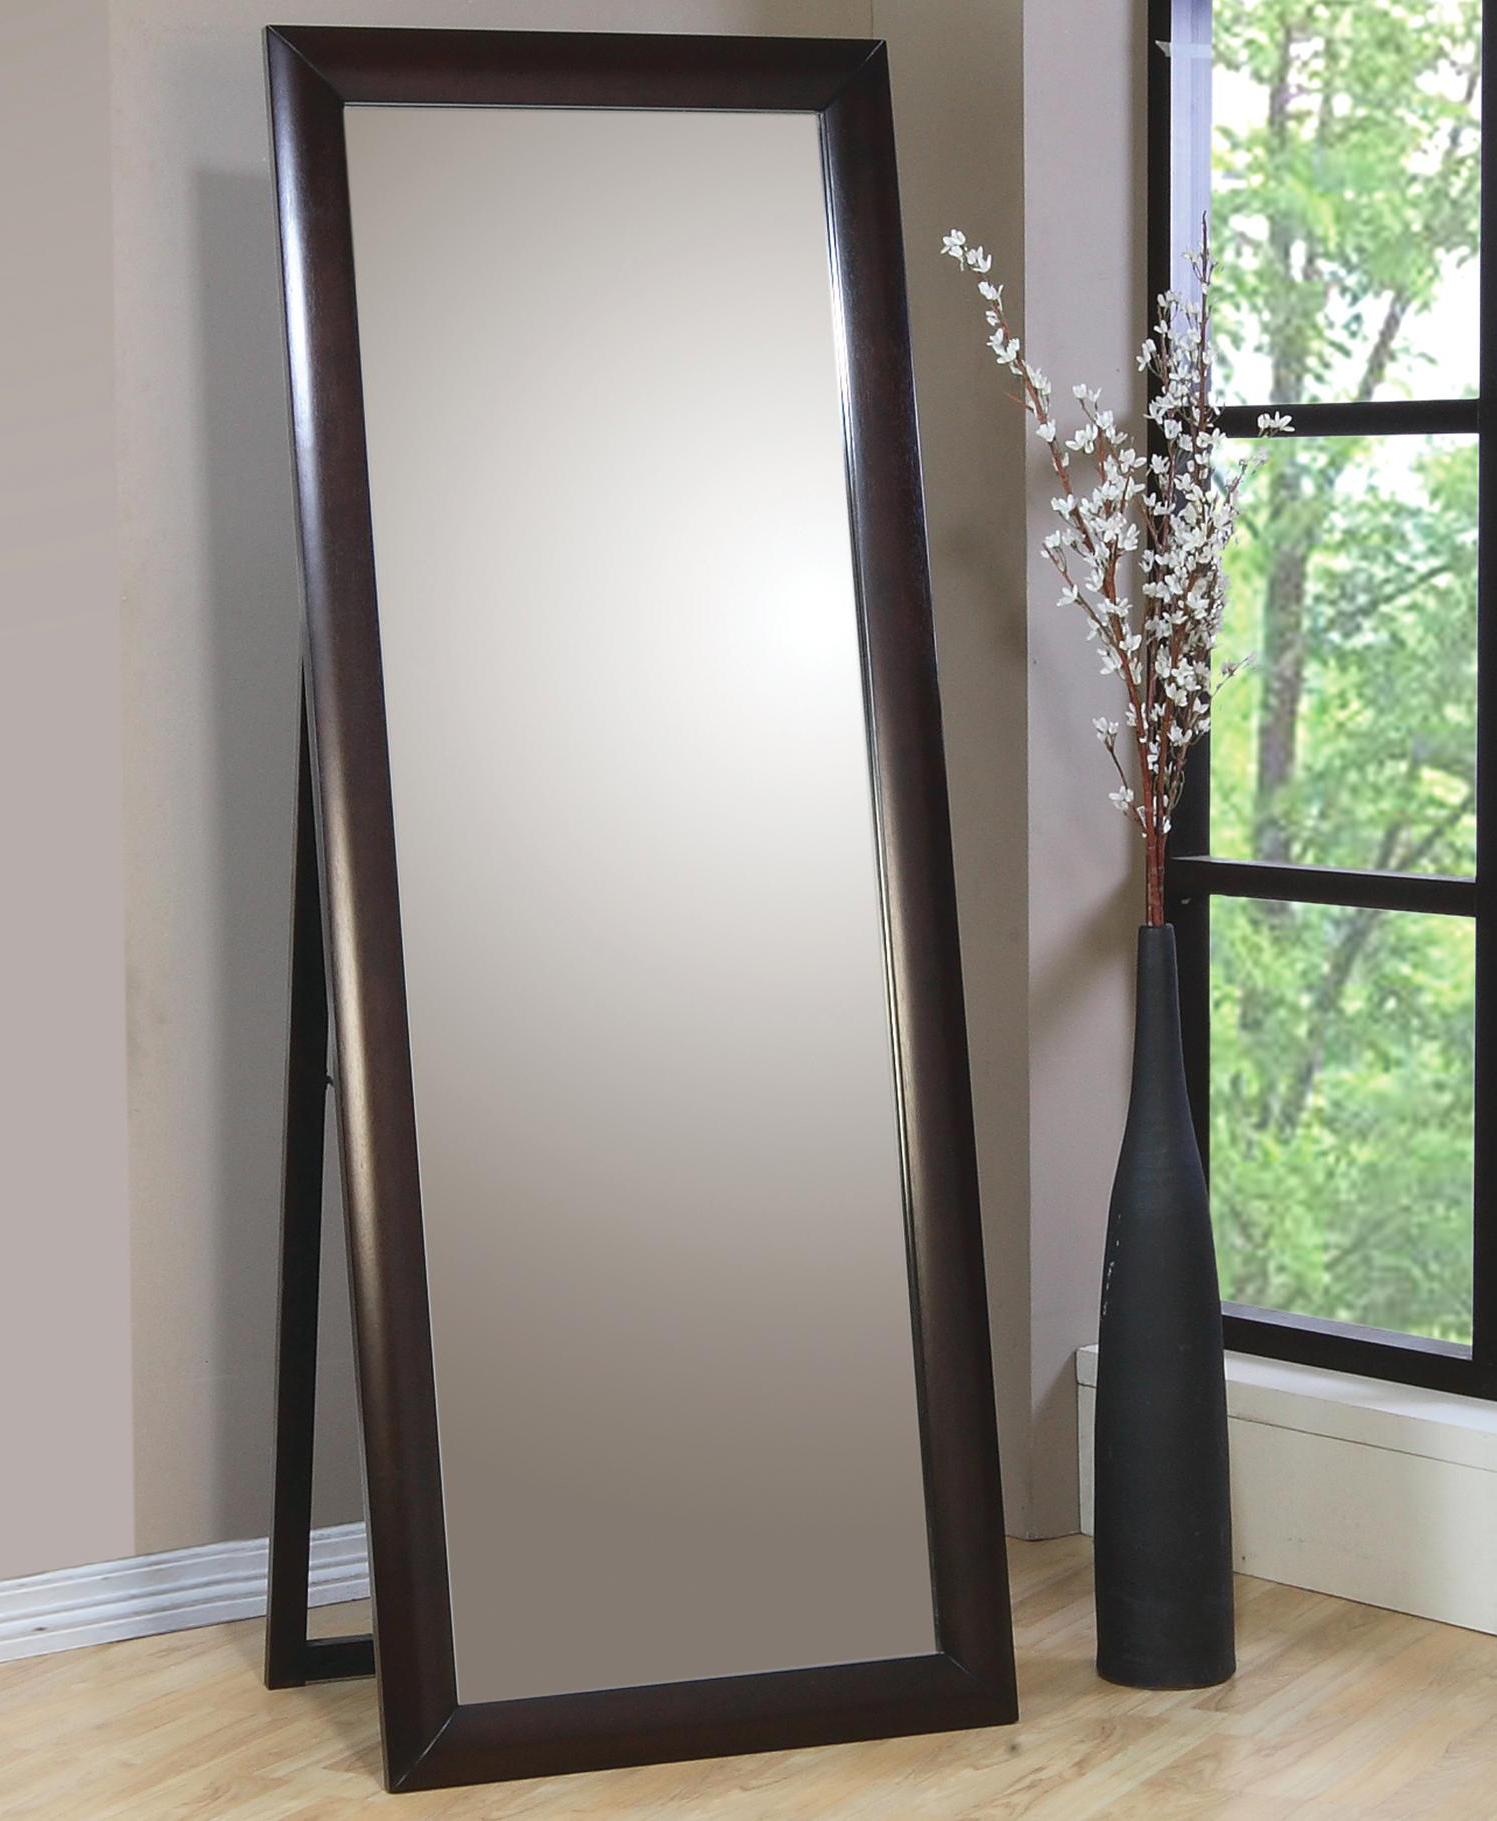 Most Popular Phoenix Contemporary Standing Floor Mirrorcoaster At Dunk & Bright Furniture Inside Standing Wall Mirrors (View 4 of 20)